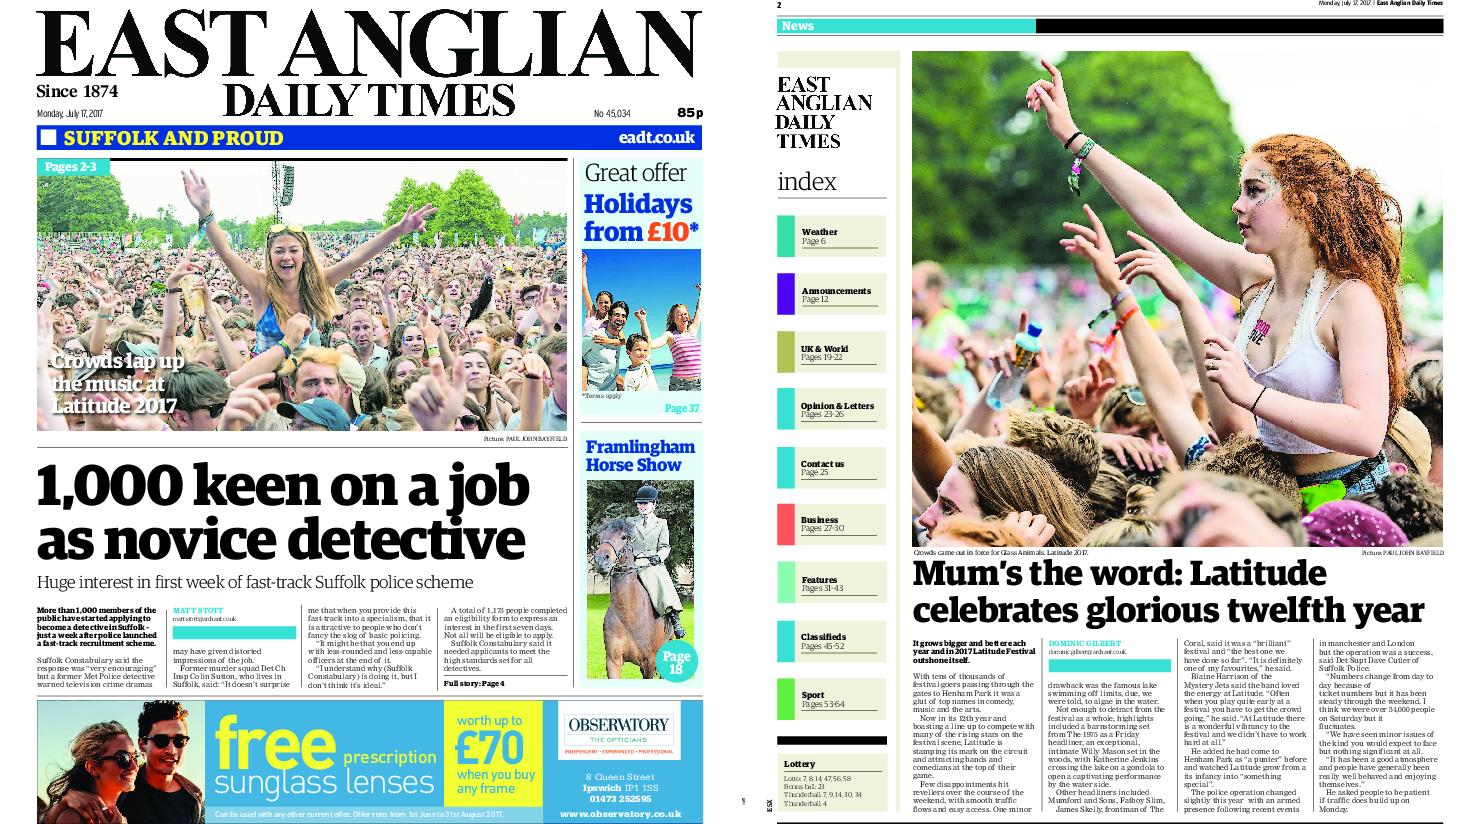 : East Anglian Daily Times July 17 2017